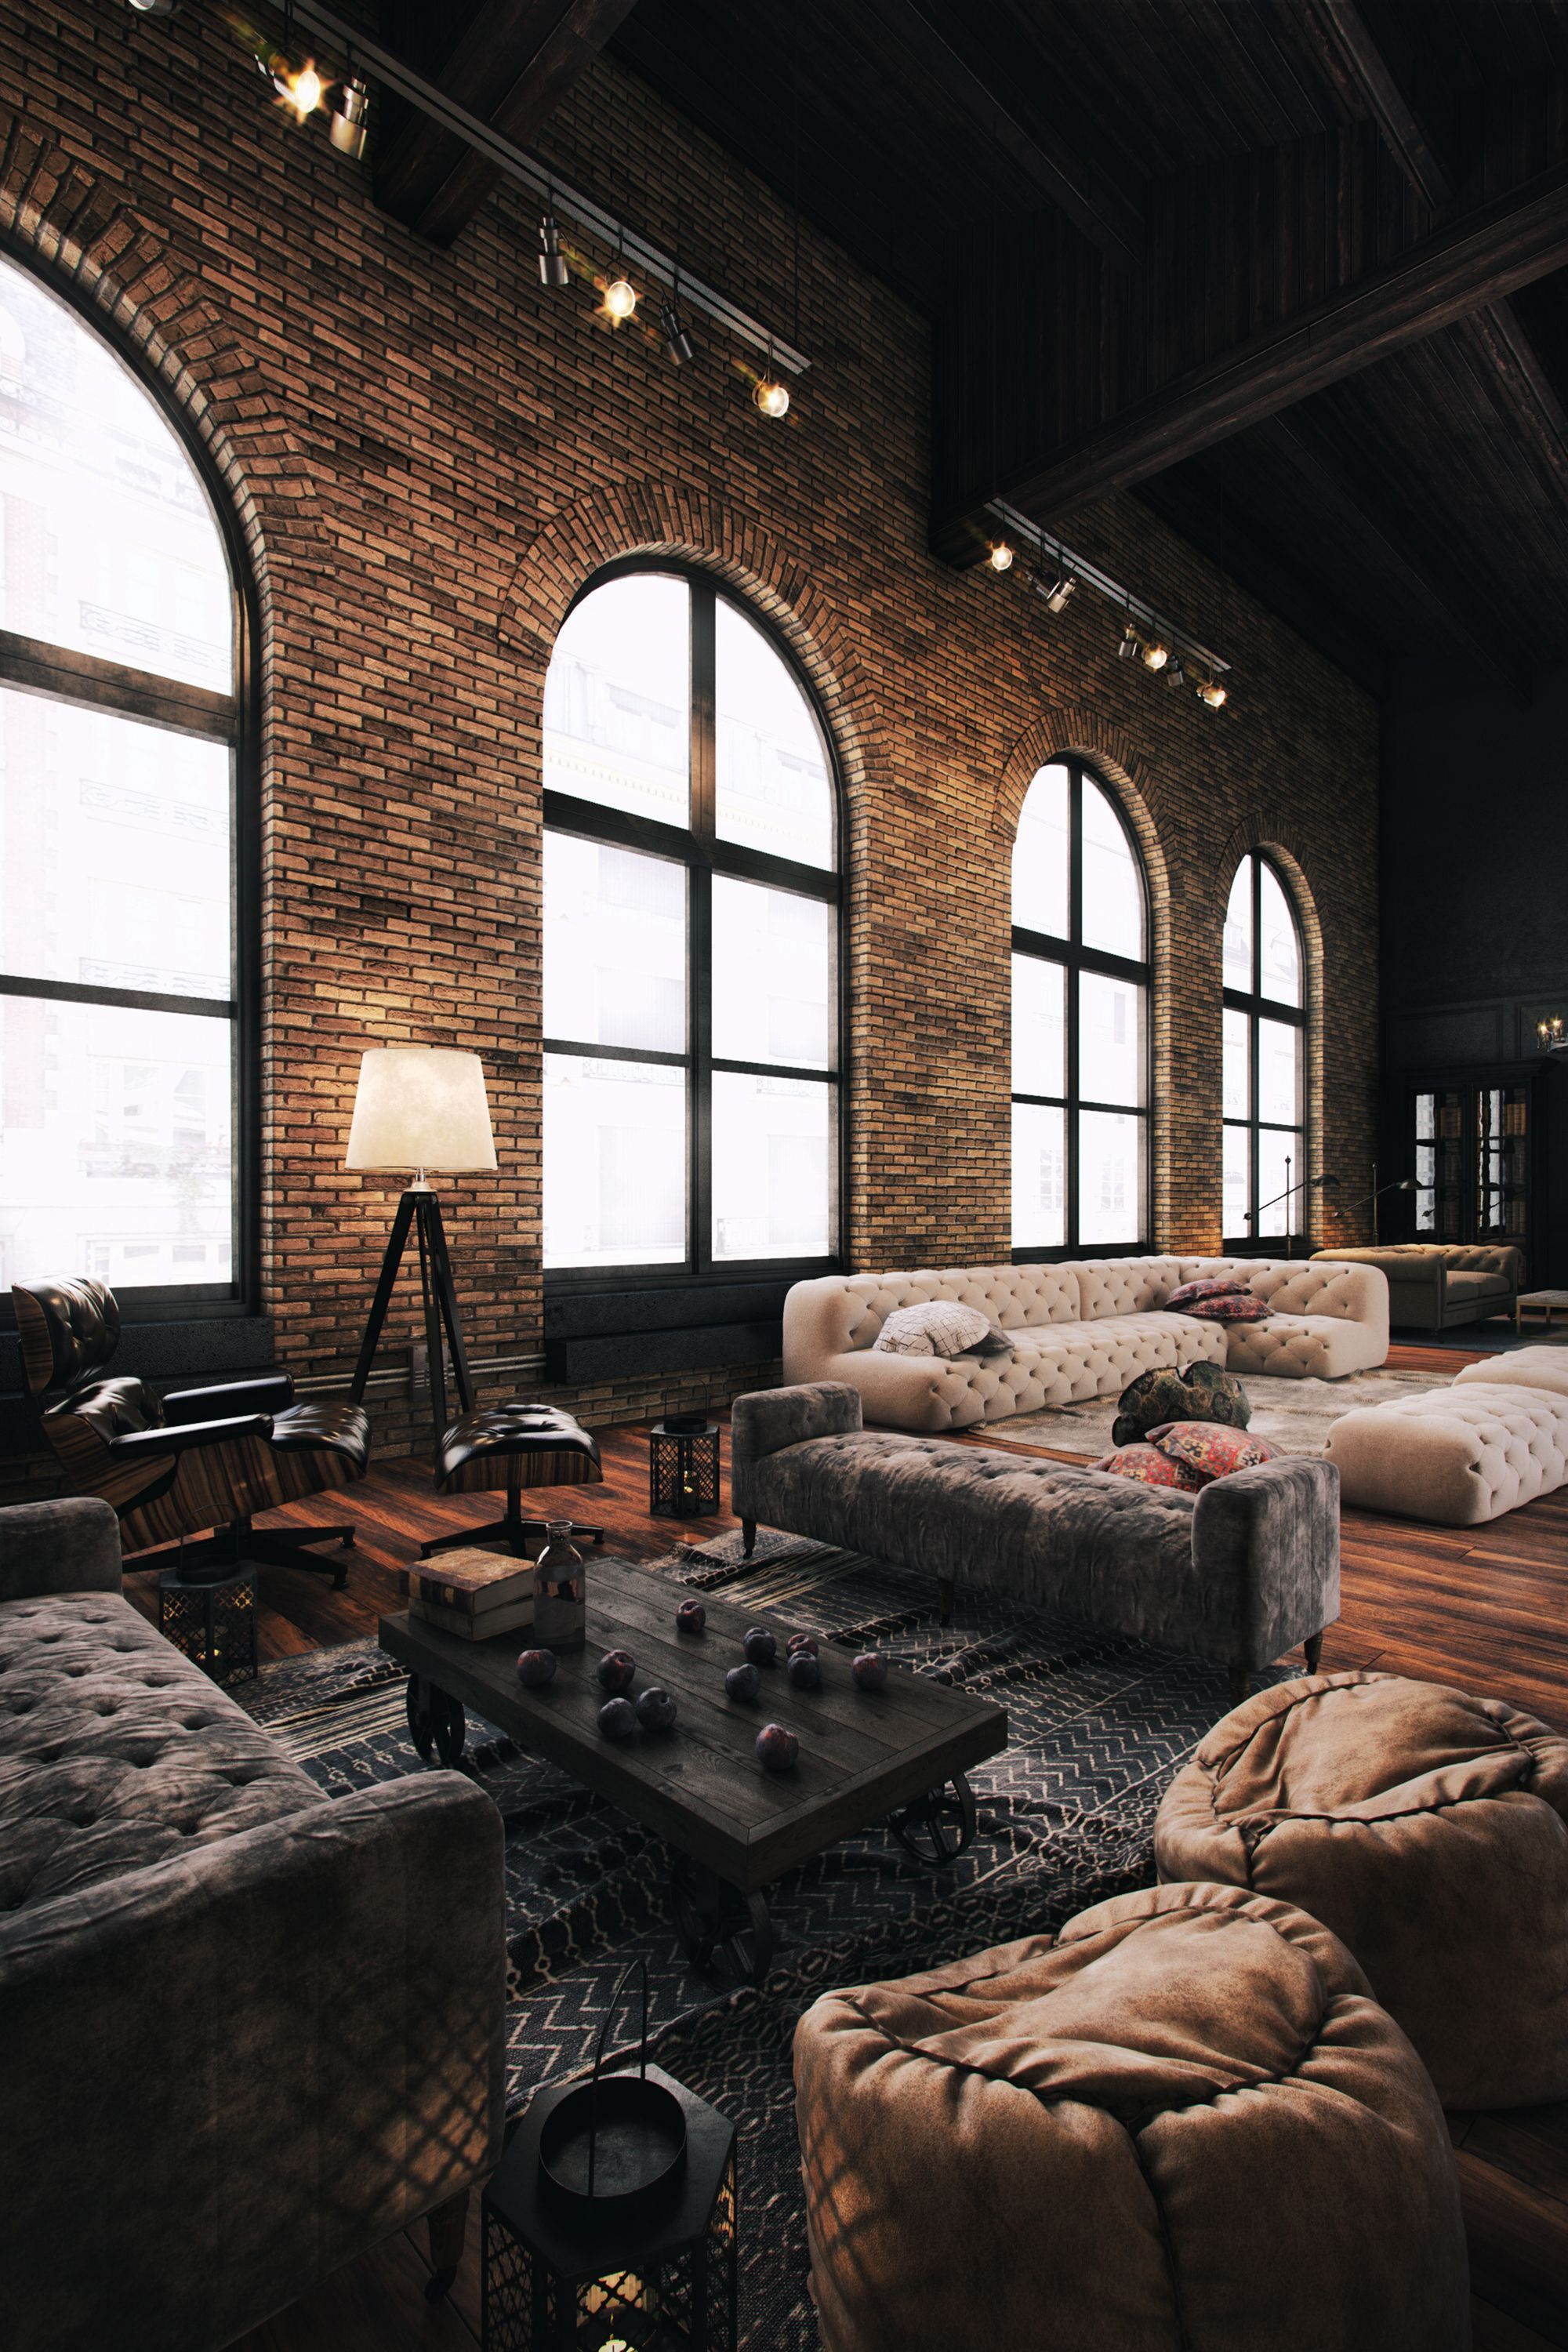 Industrial Room Design Ideas: 30 Cozy Industrial Living Room Design Ideas That Will